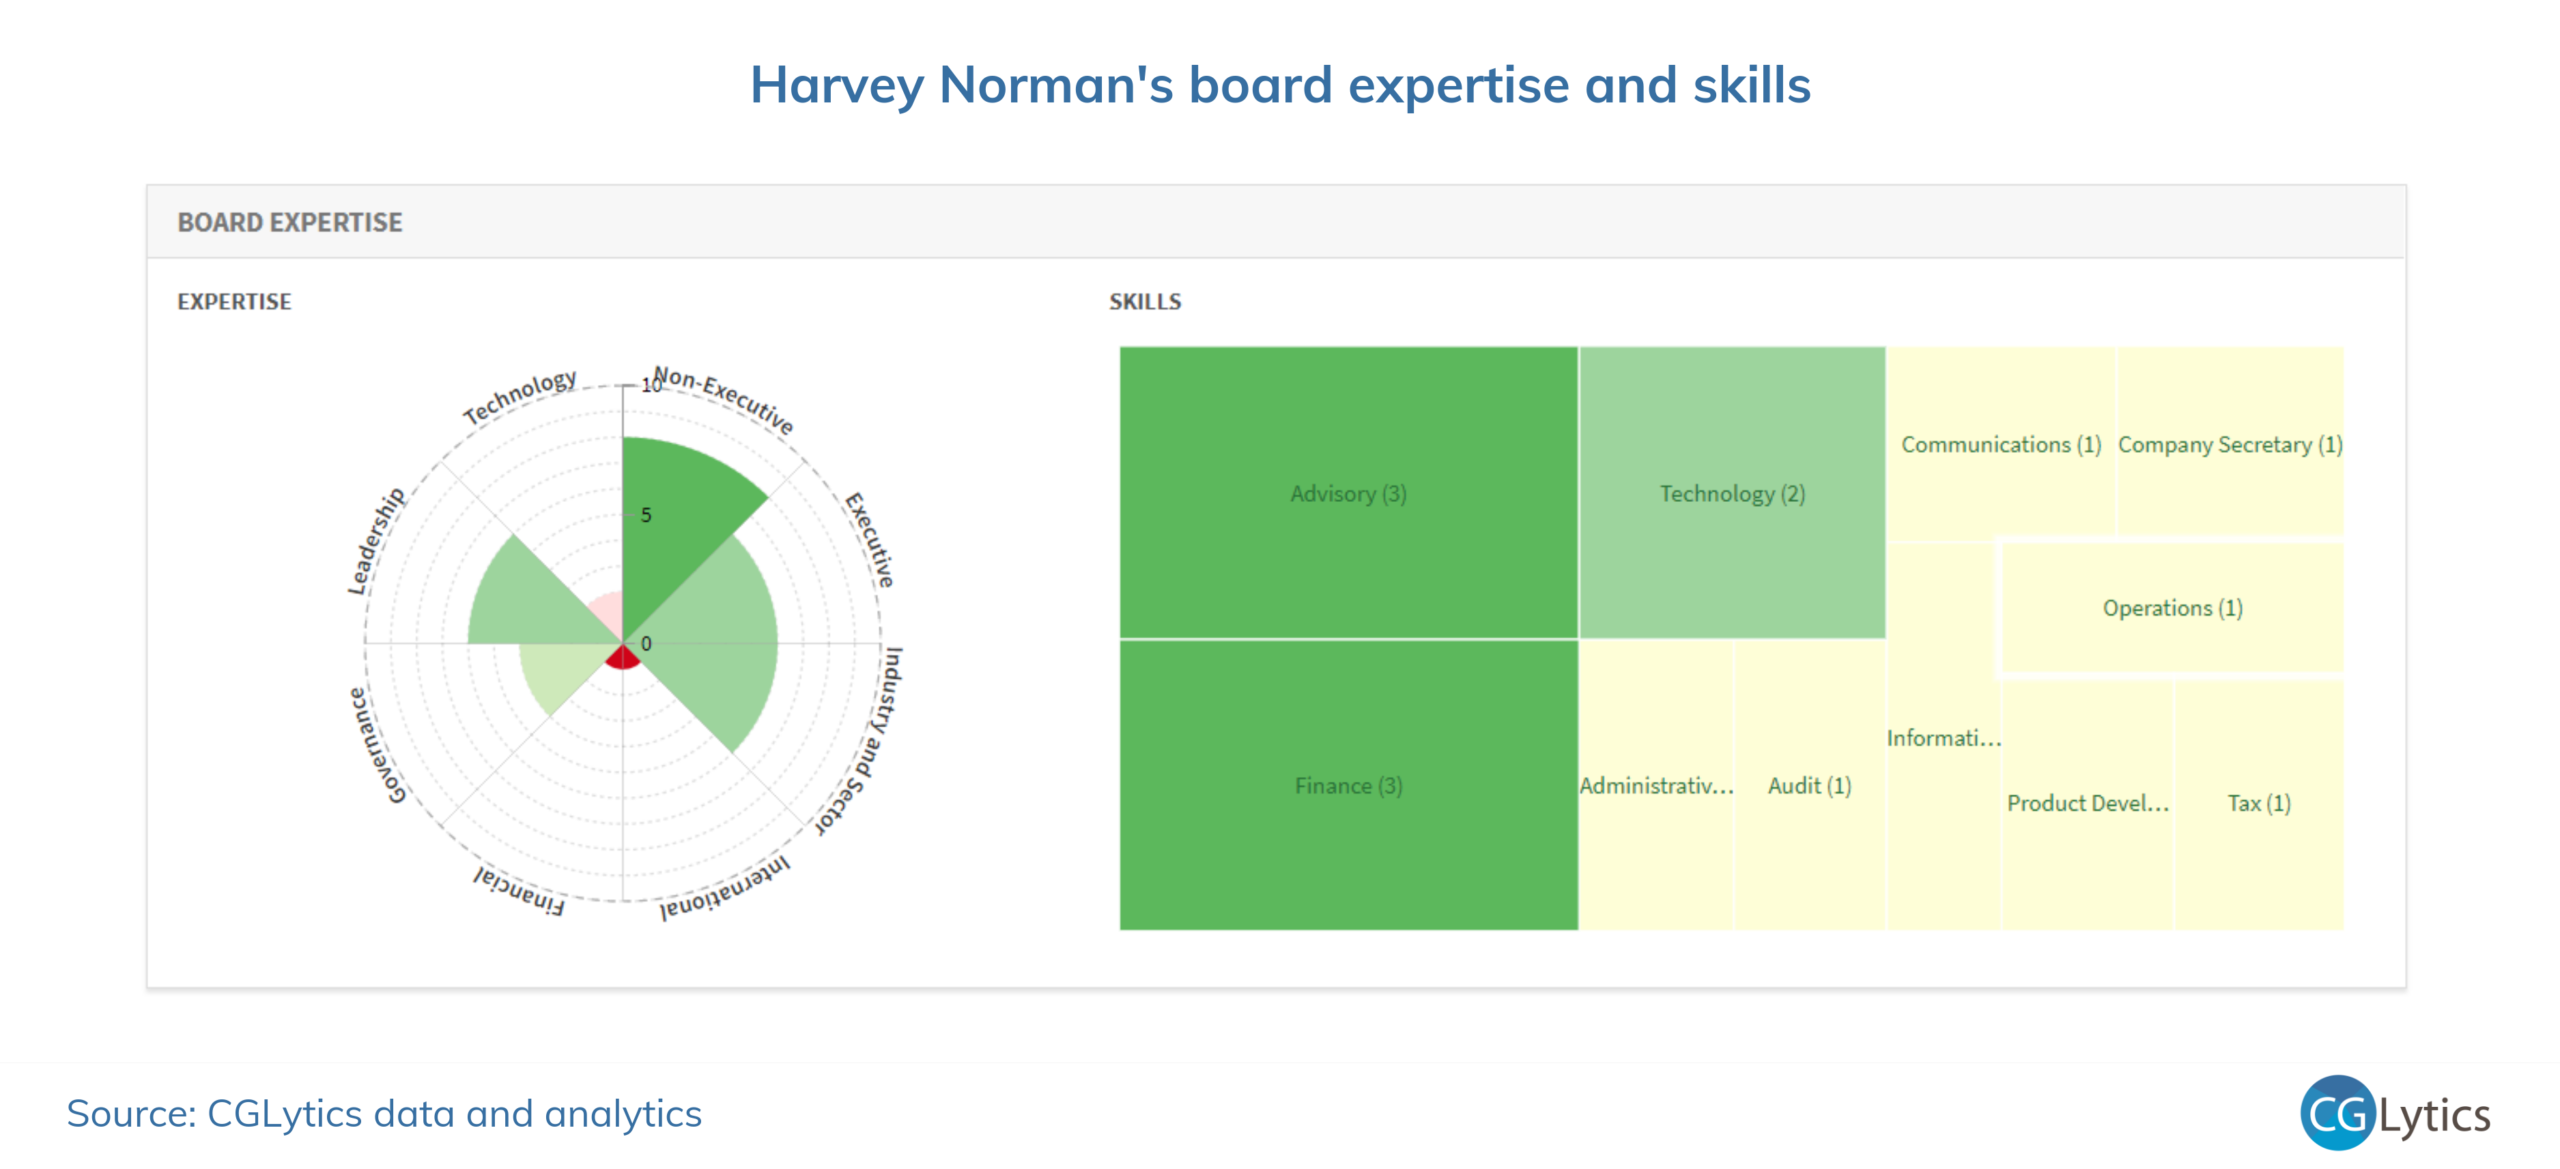 Harvey Norman's board expertise